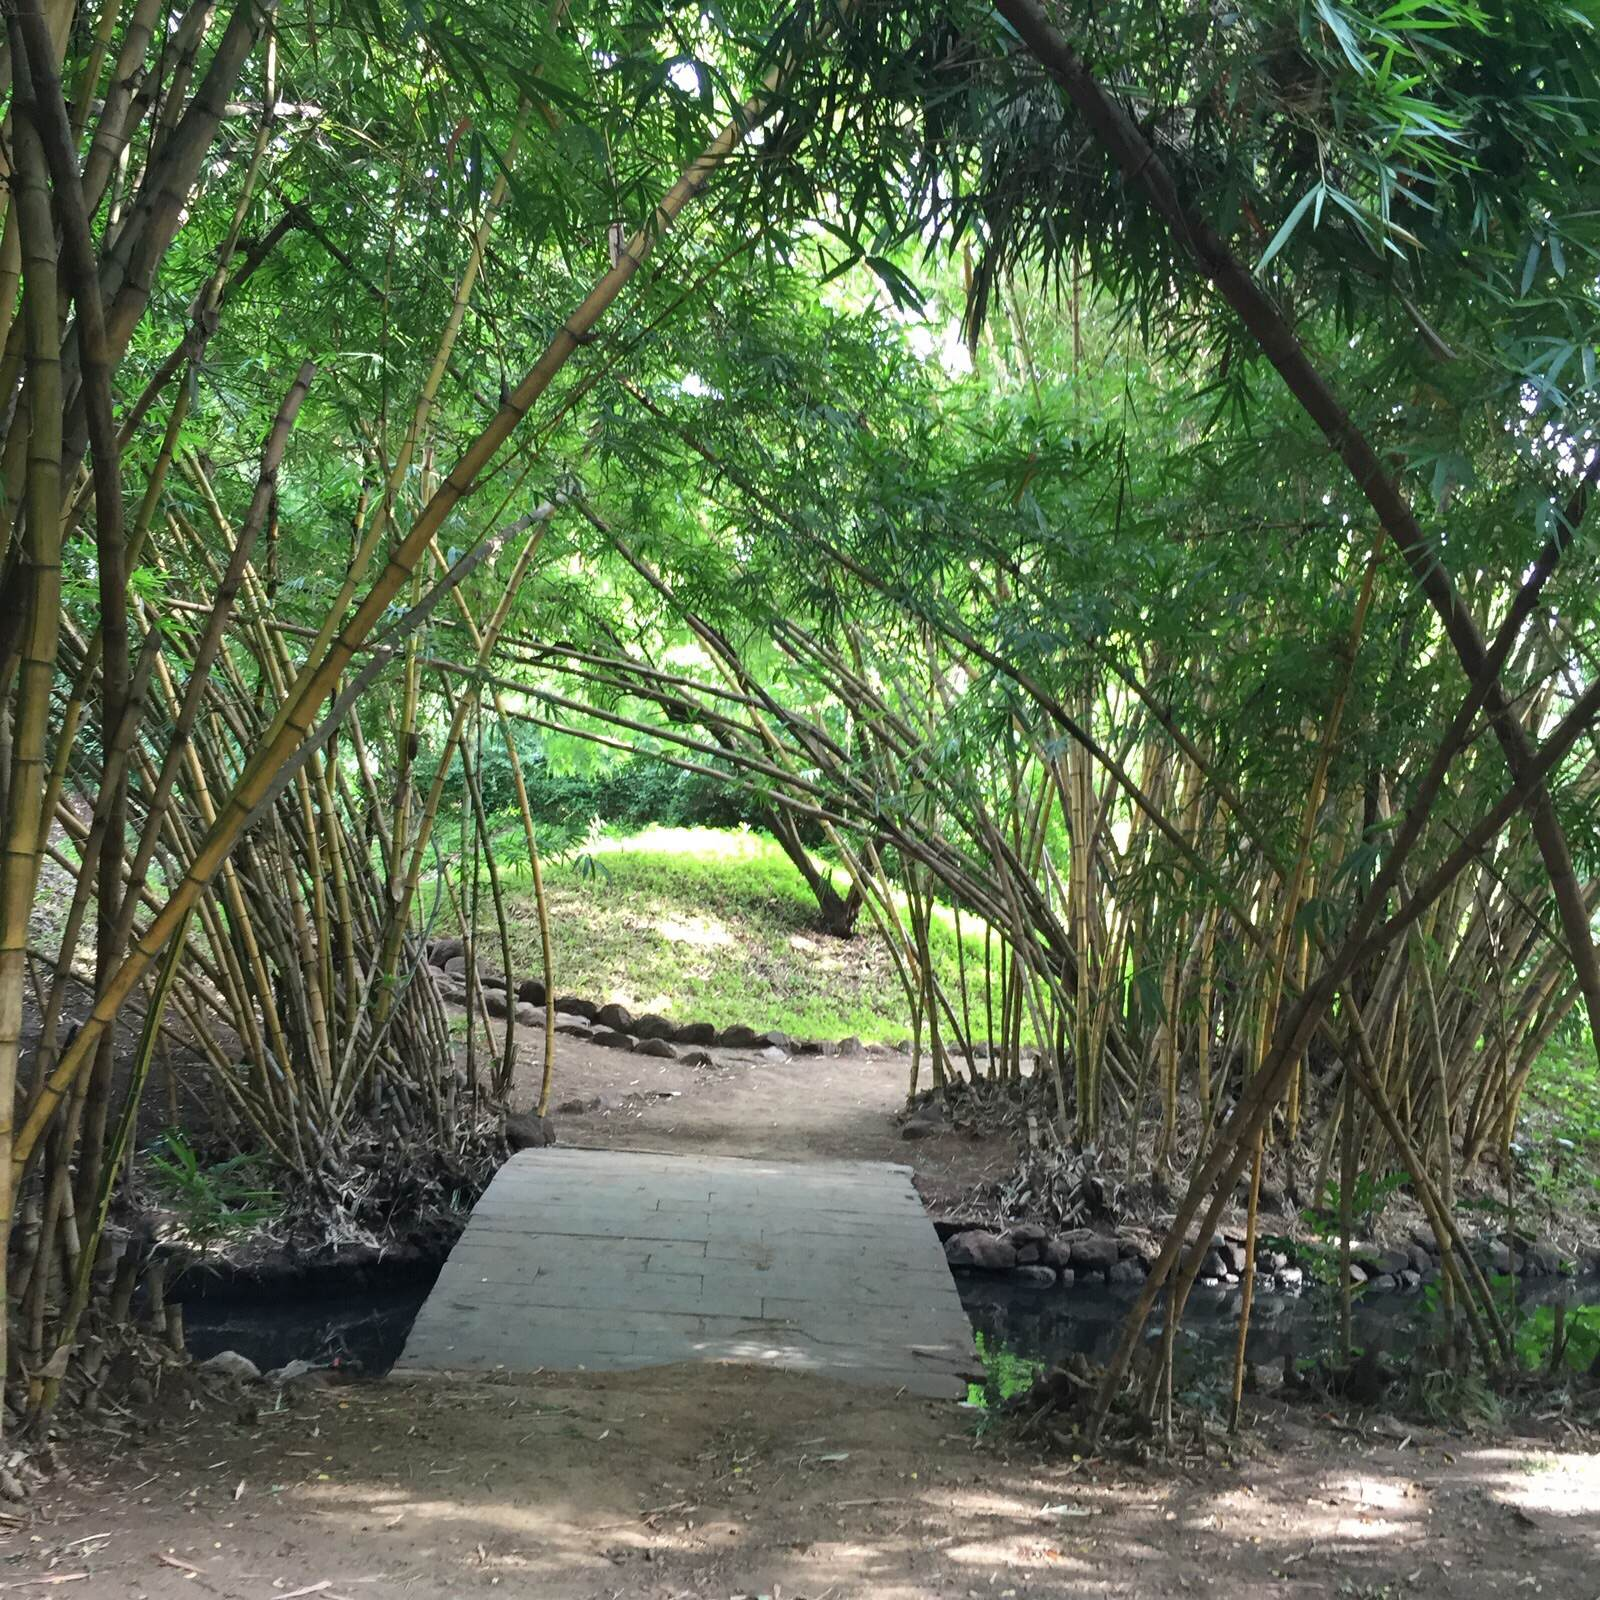 Osho Teerth Gardens Pune, the foodietrails: A triumph of both nature and man: Osho teerth park